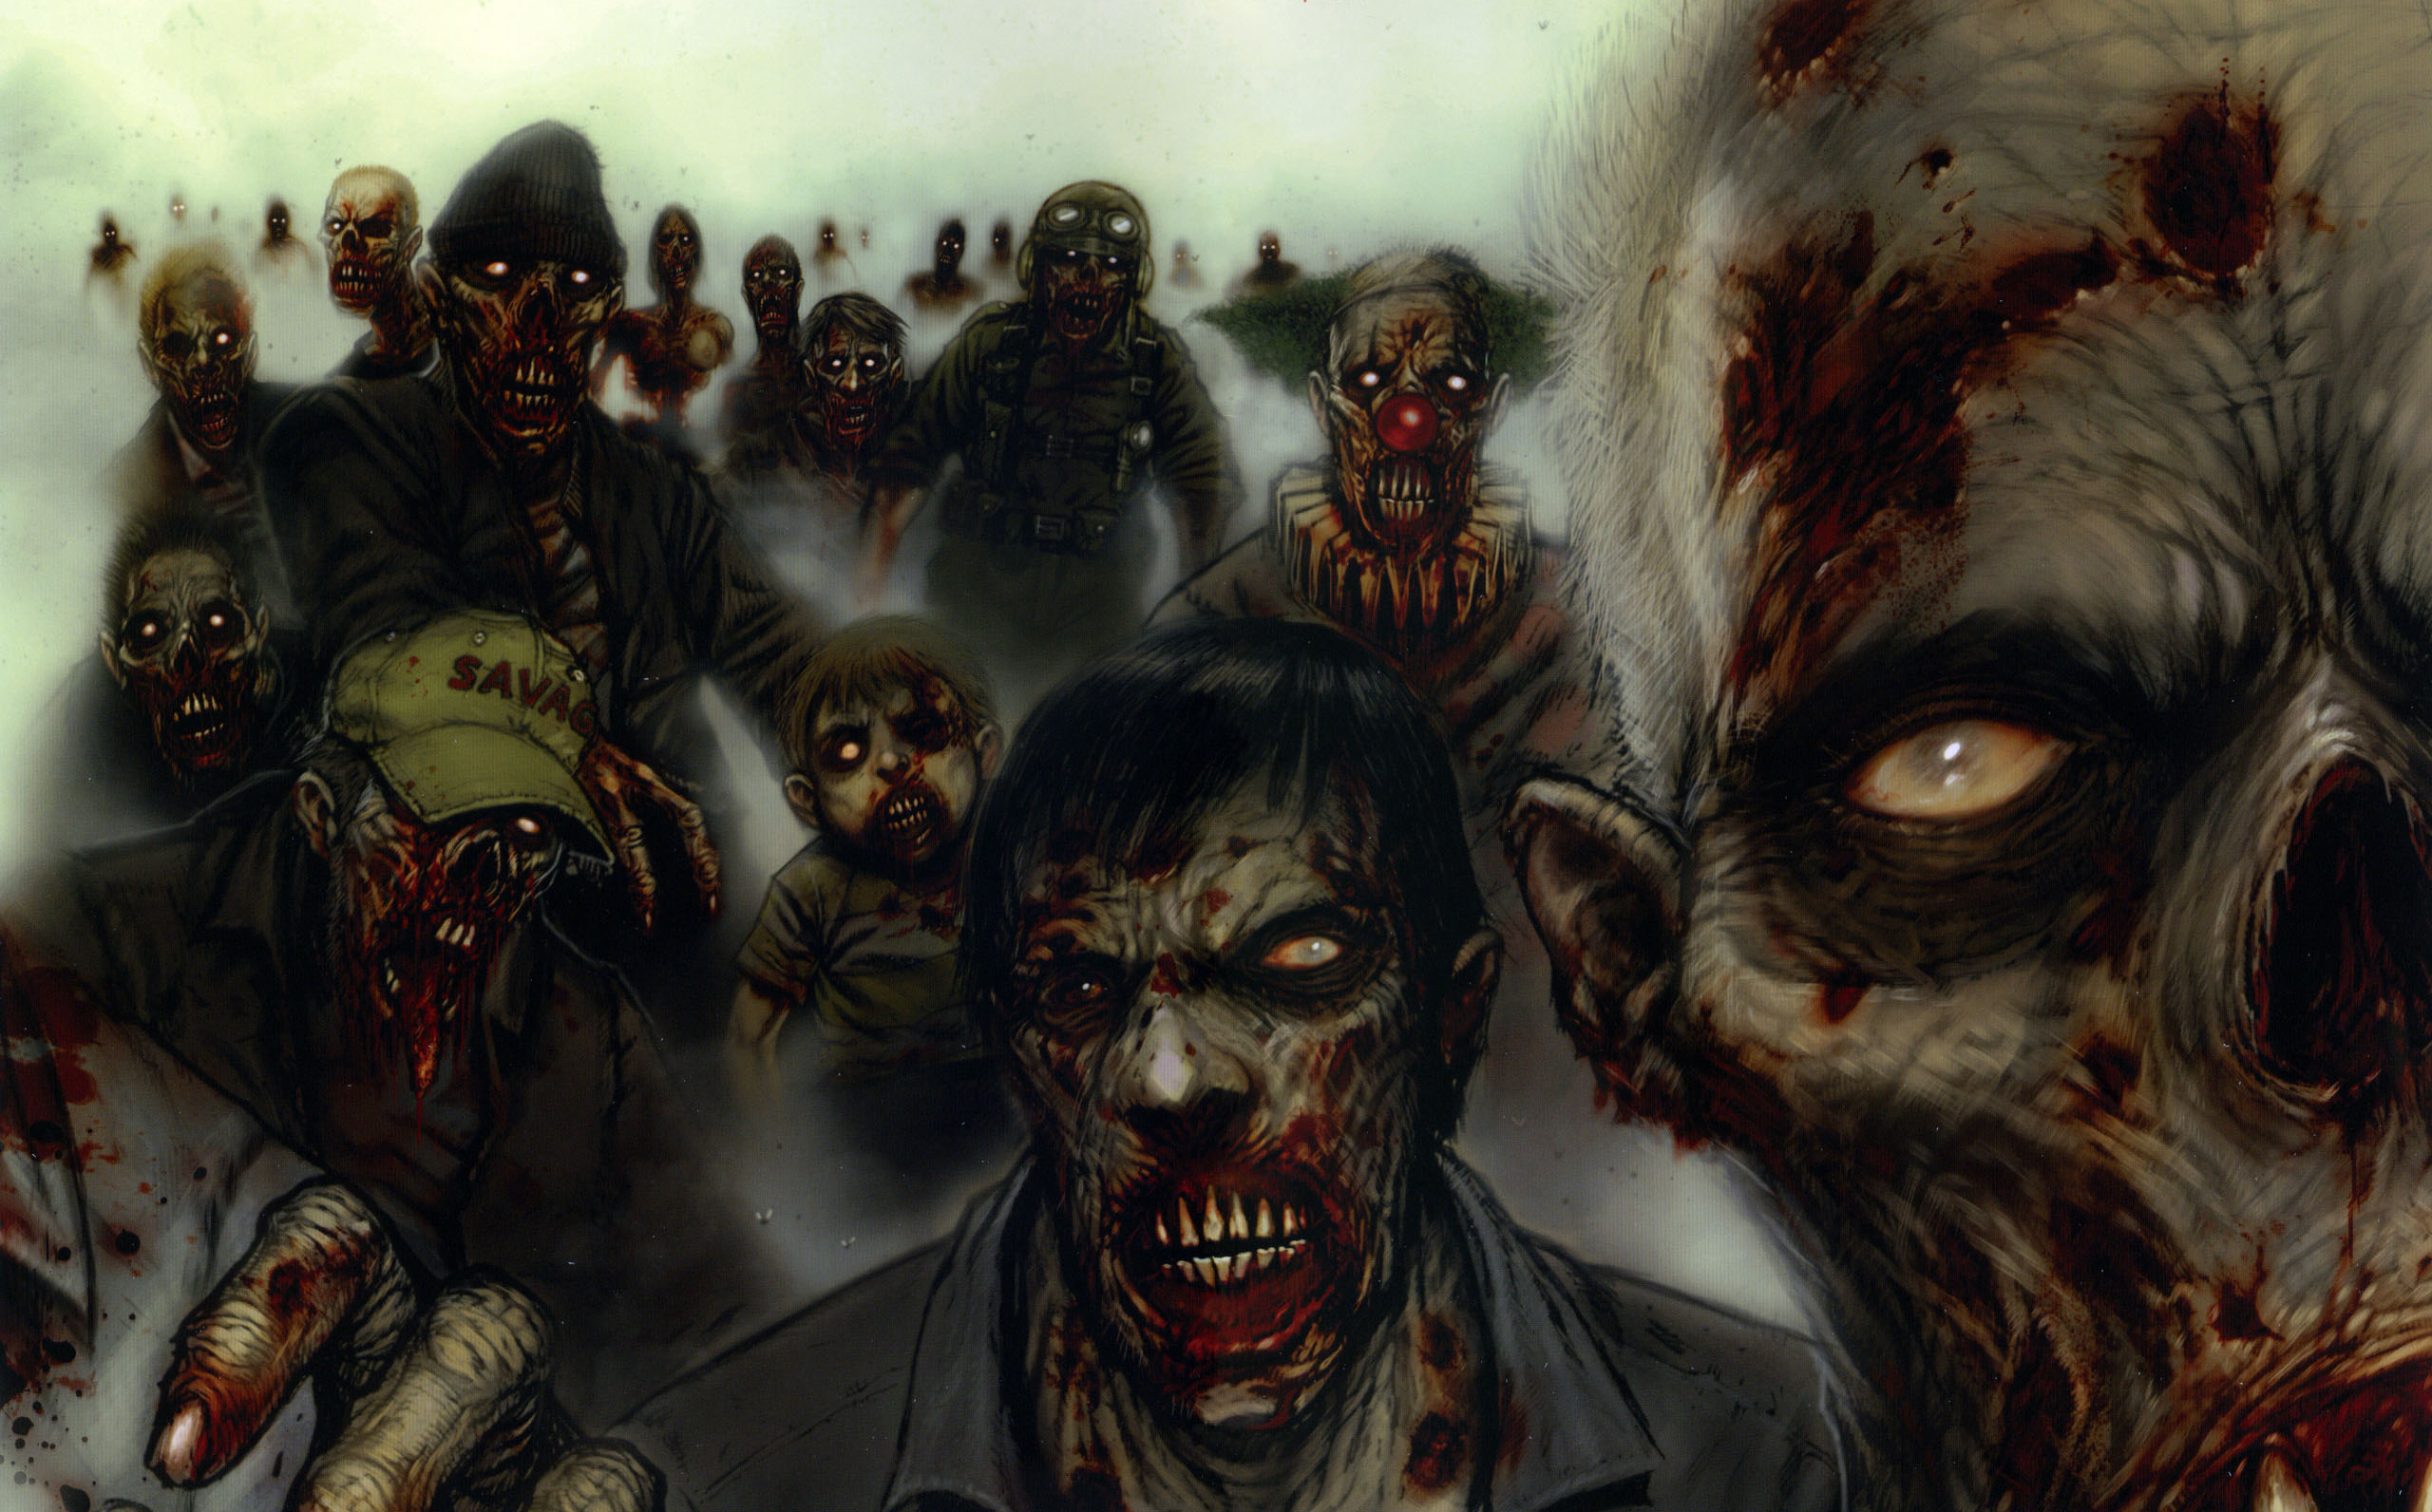 446 Zombie Hd Wallpapers Background Images Wallpaper Abyss